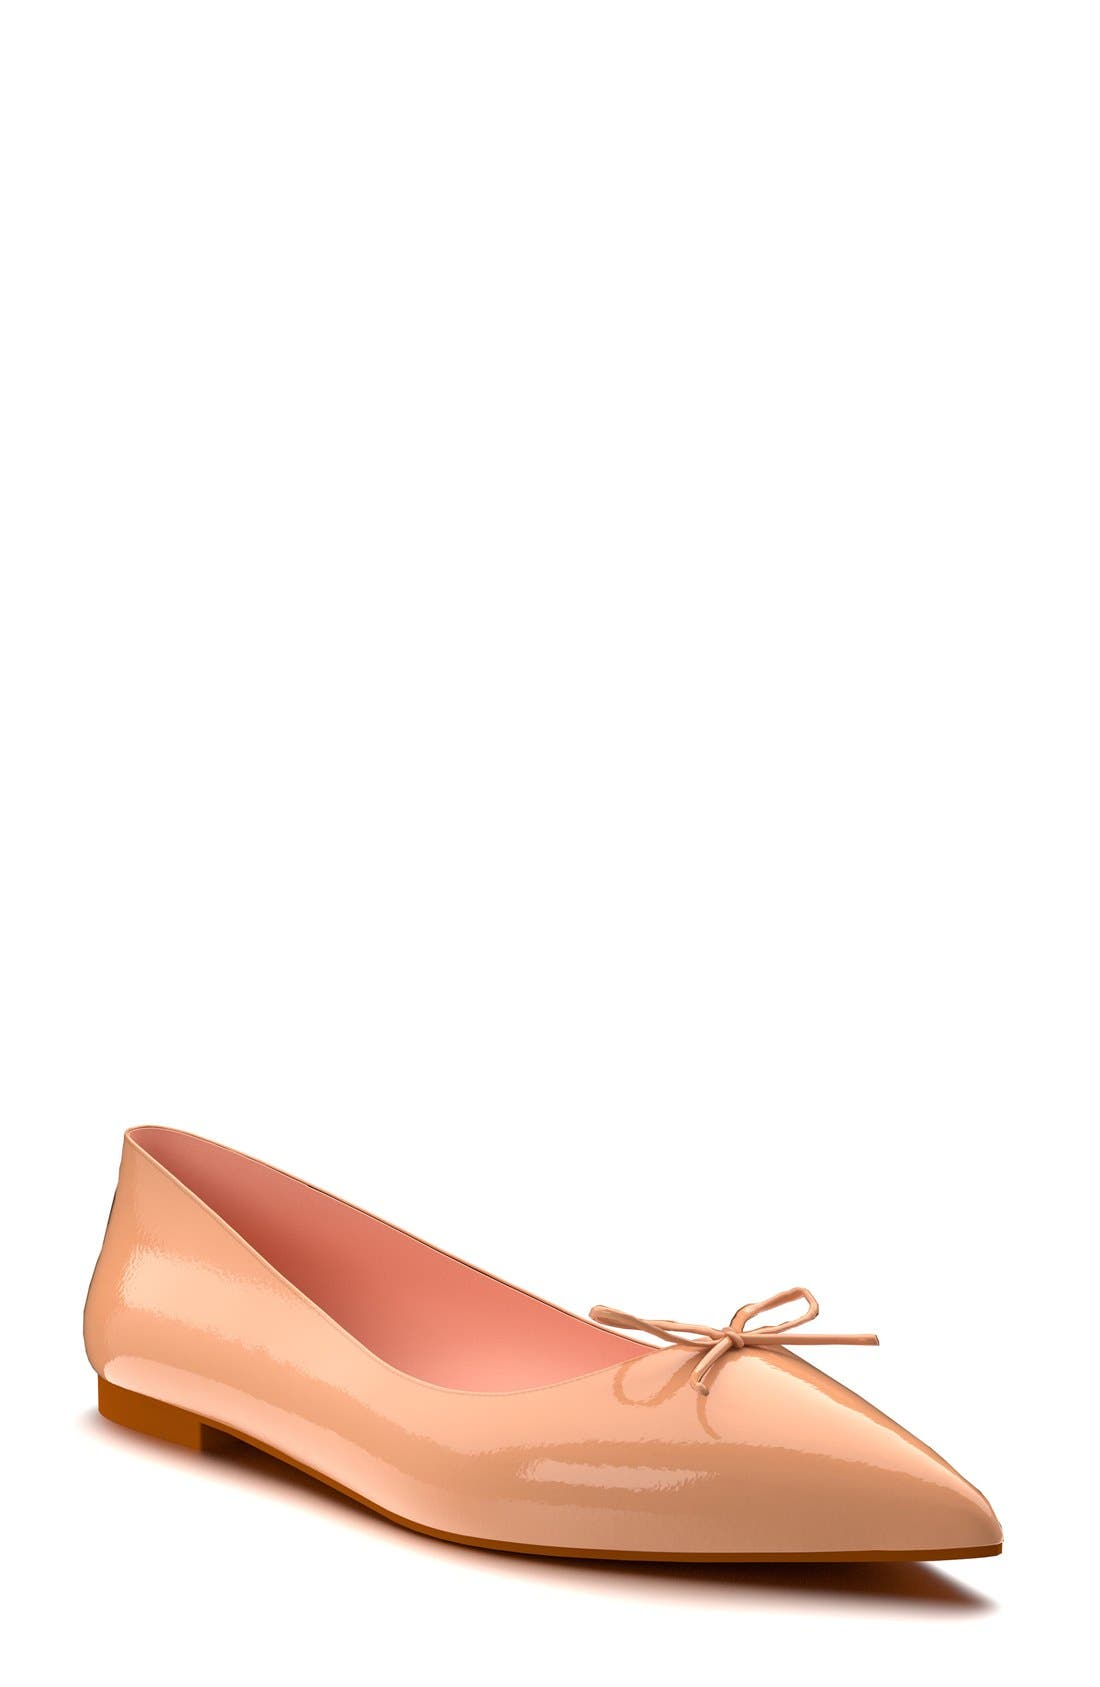 Shoes of Prey Pointy Toe Ballet Flat (Women)